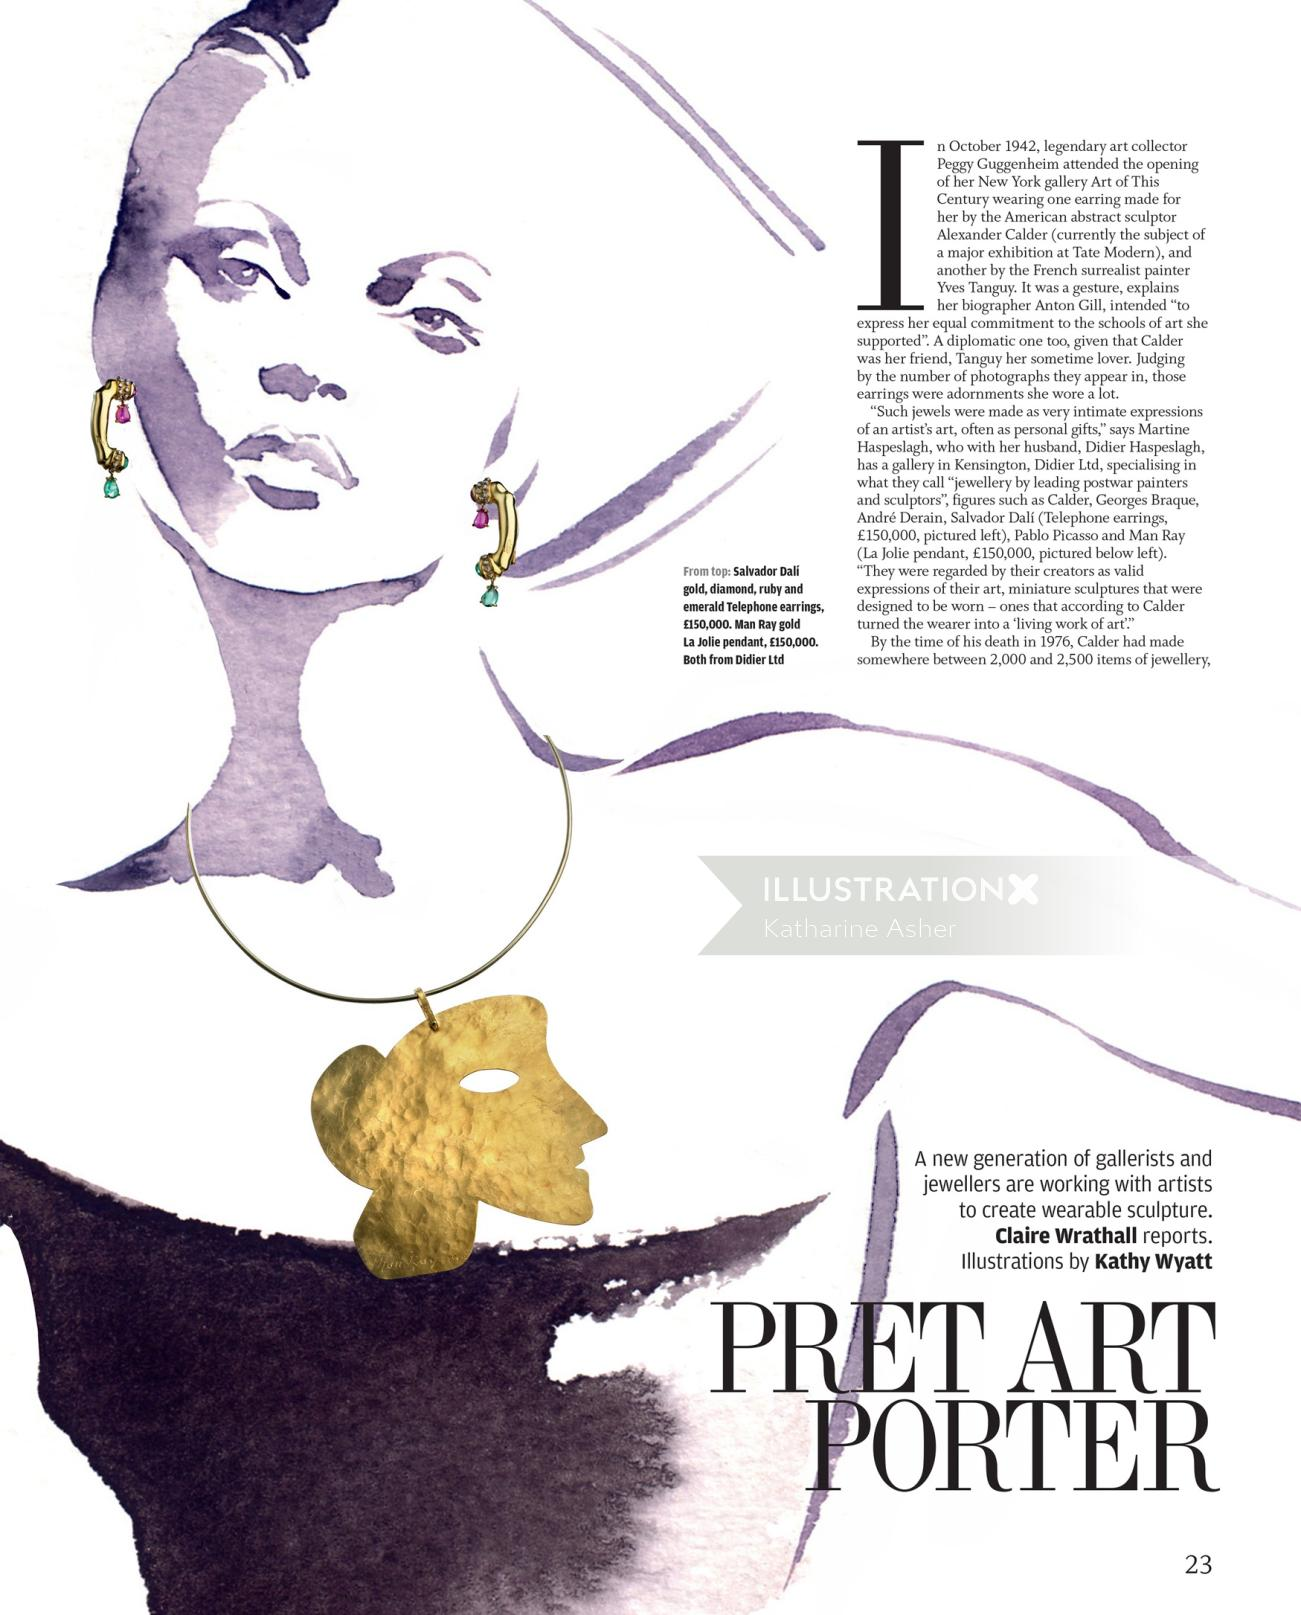 Illustration for fine art Jewellery by Katharine Asher